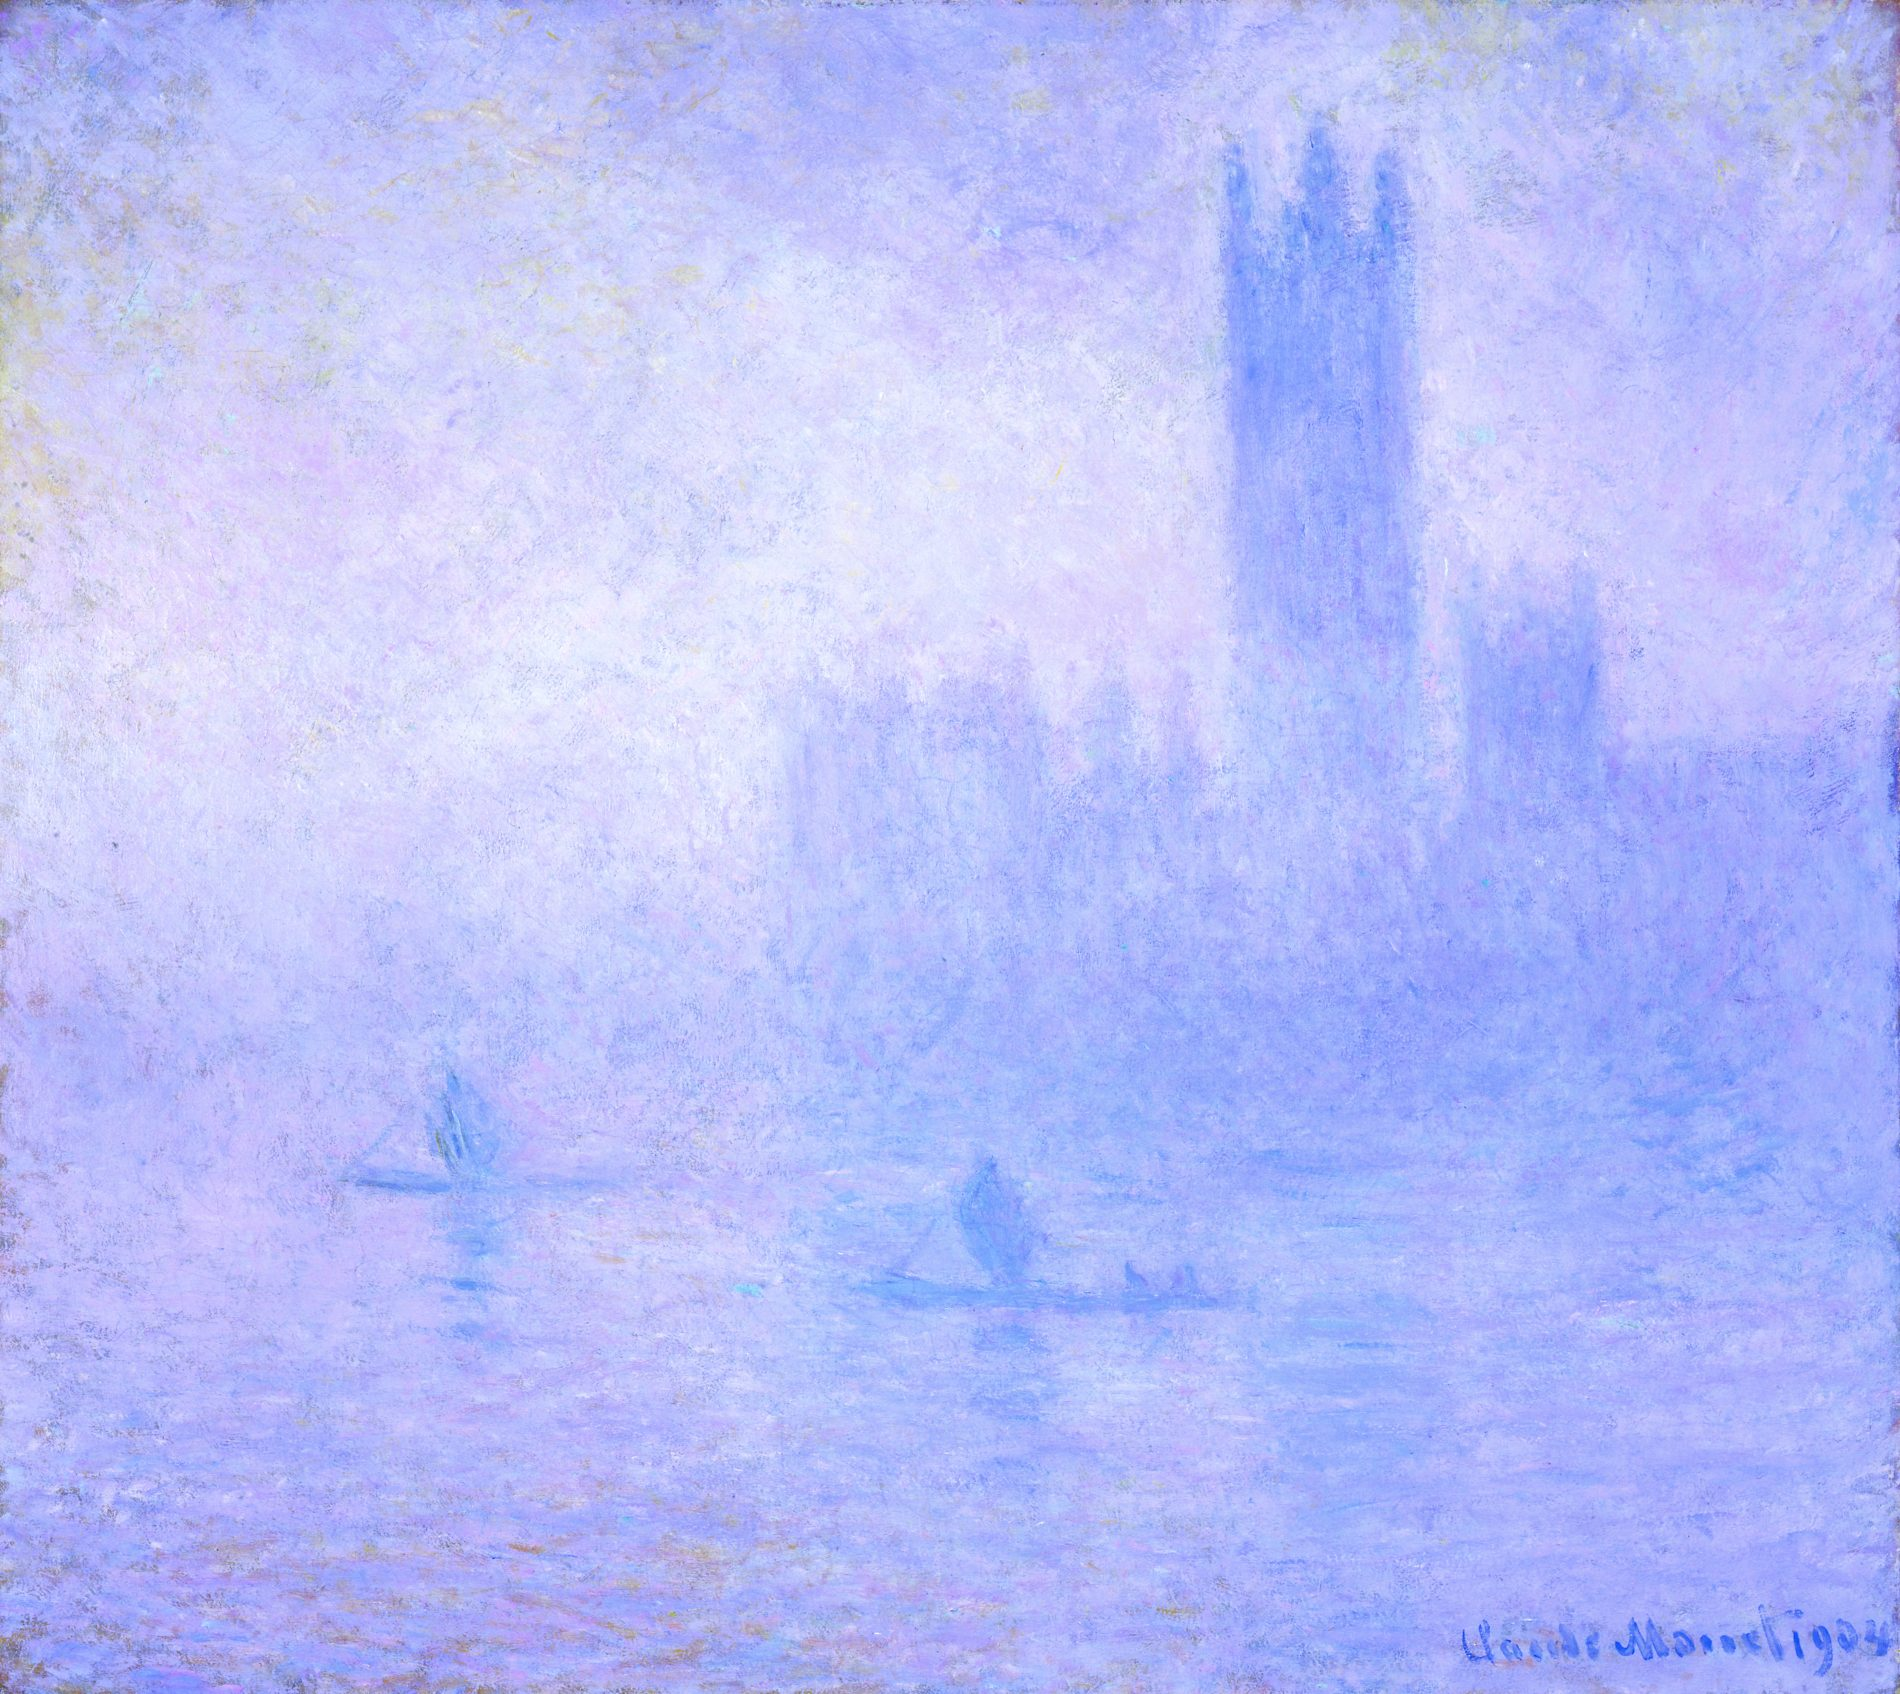 Claude Monet, French, 1840–1926, Houses of Parliament: Effect of Fog, London, 1904, Oil on canvas.